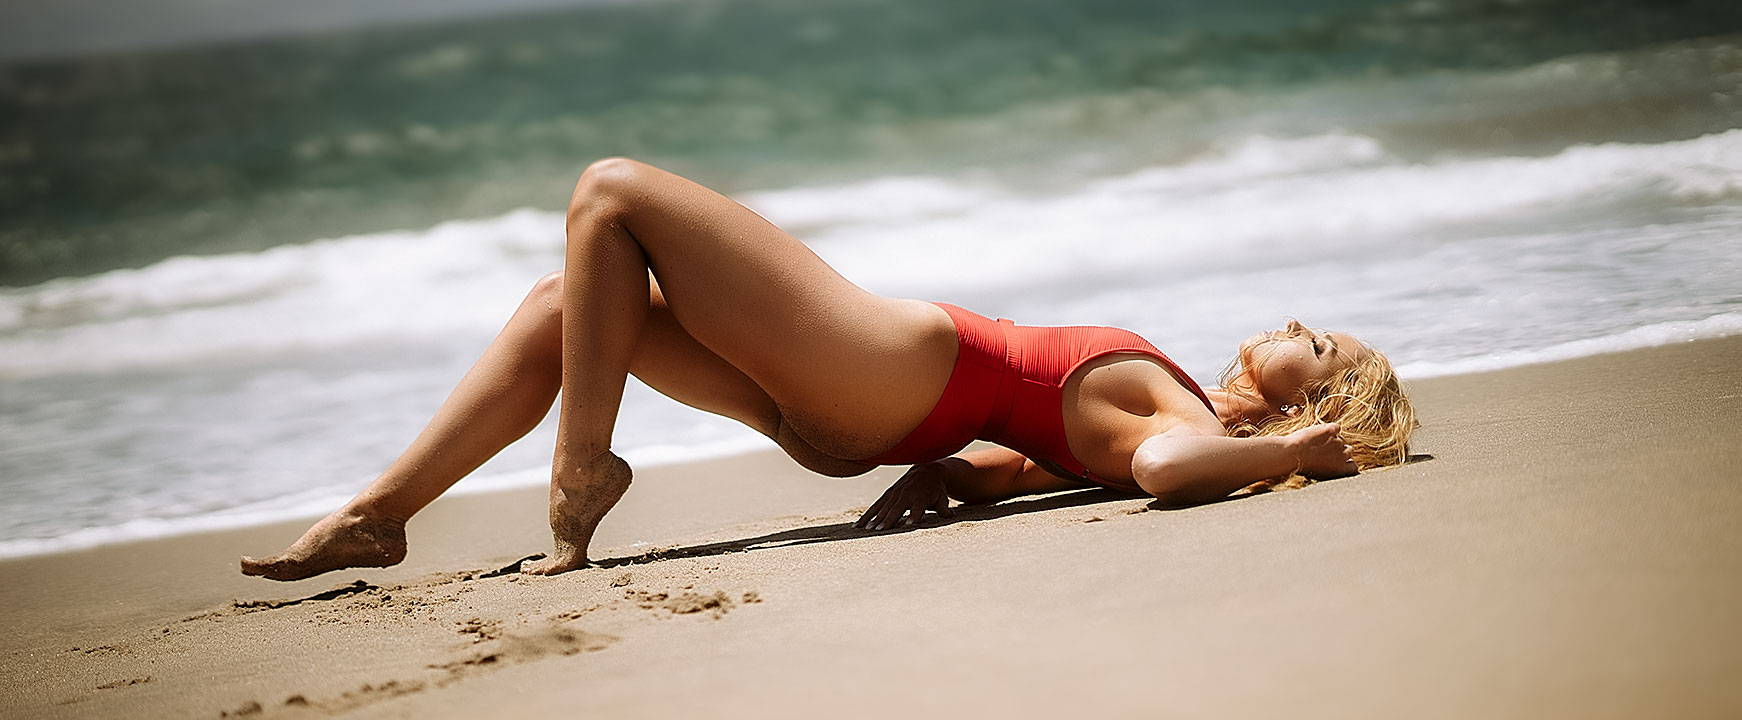 lying on the beach sand in a red belted swimsuit